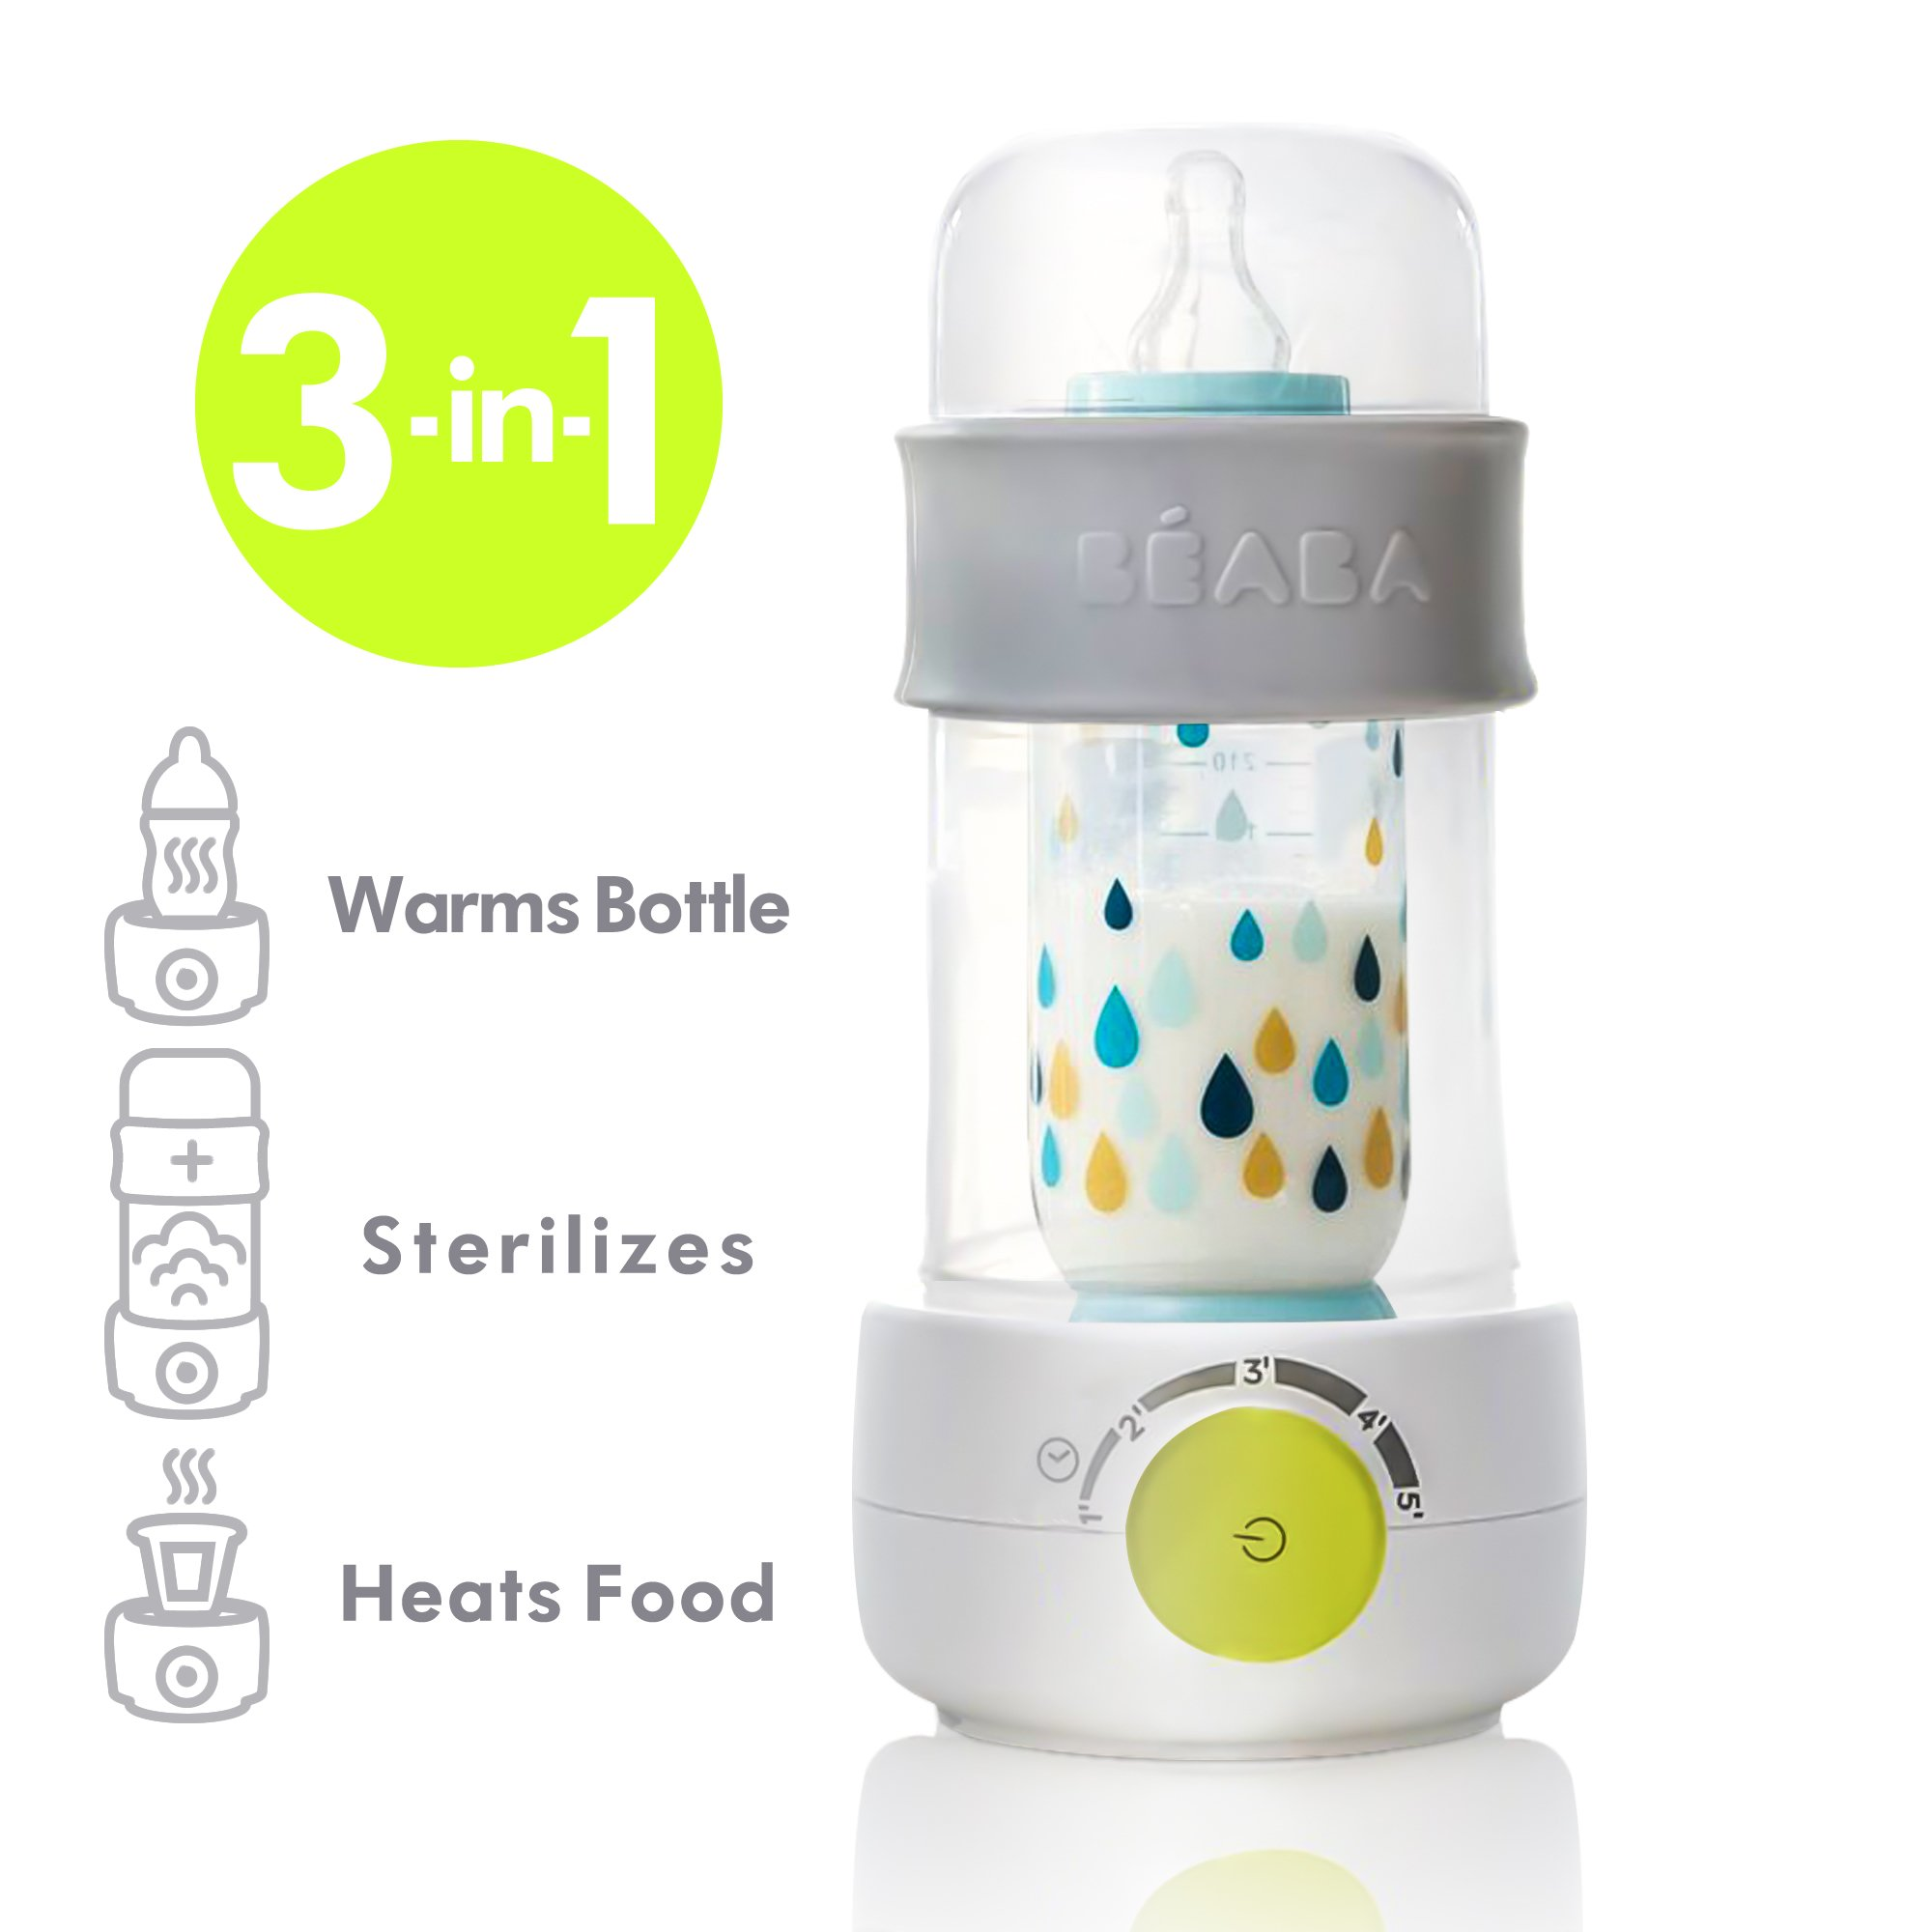 BEABA Quick Baby Bottle Warmer, Steam Sterilizer, Baby Food Heater (3-in-1) Warm Milk in Just Two Minutes, BPA and Lead Free, Simple Temperature Control, Fits All Bottle Sizes - Even Wide Neck, Neon